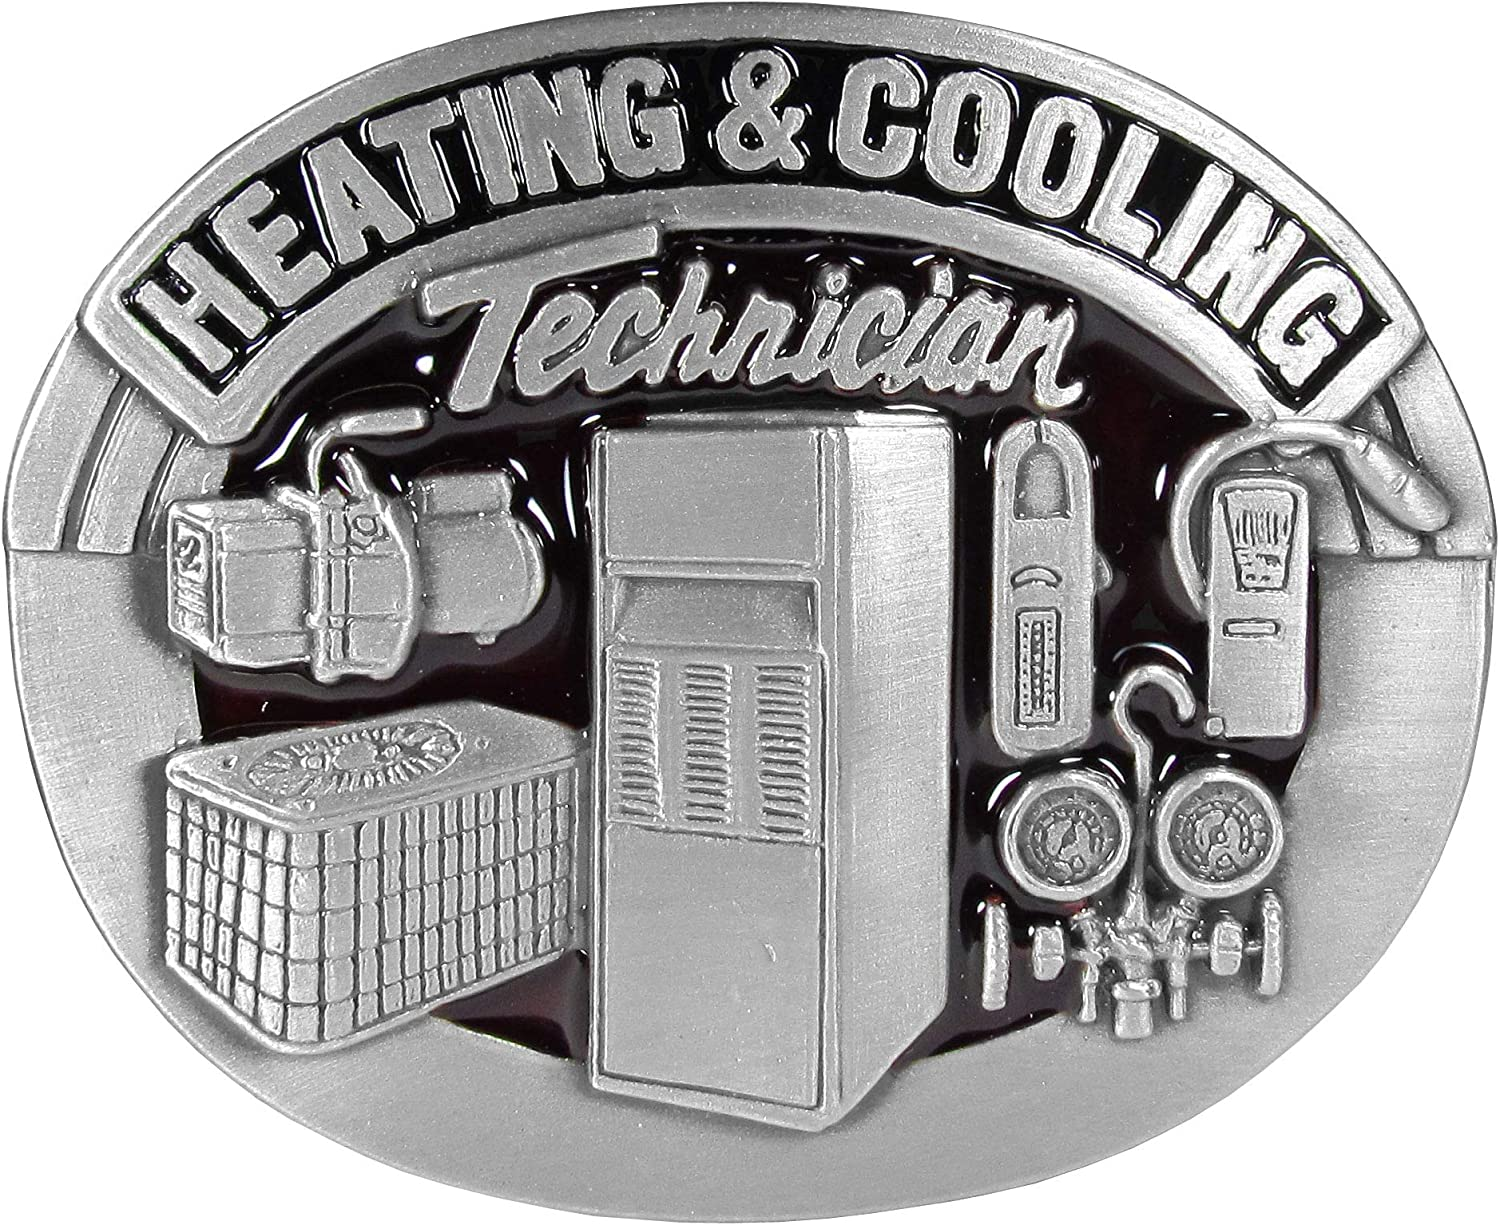 Heating & Cooling Technician Enameled Belt Buckle